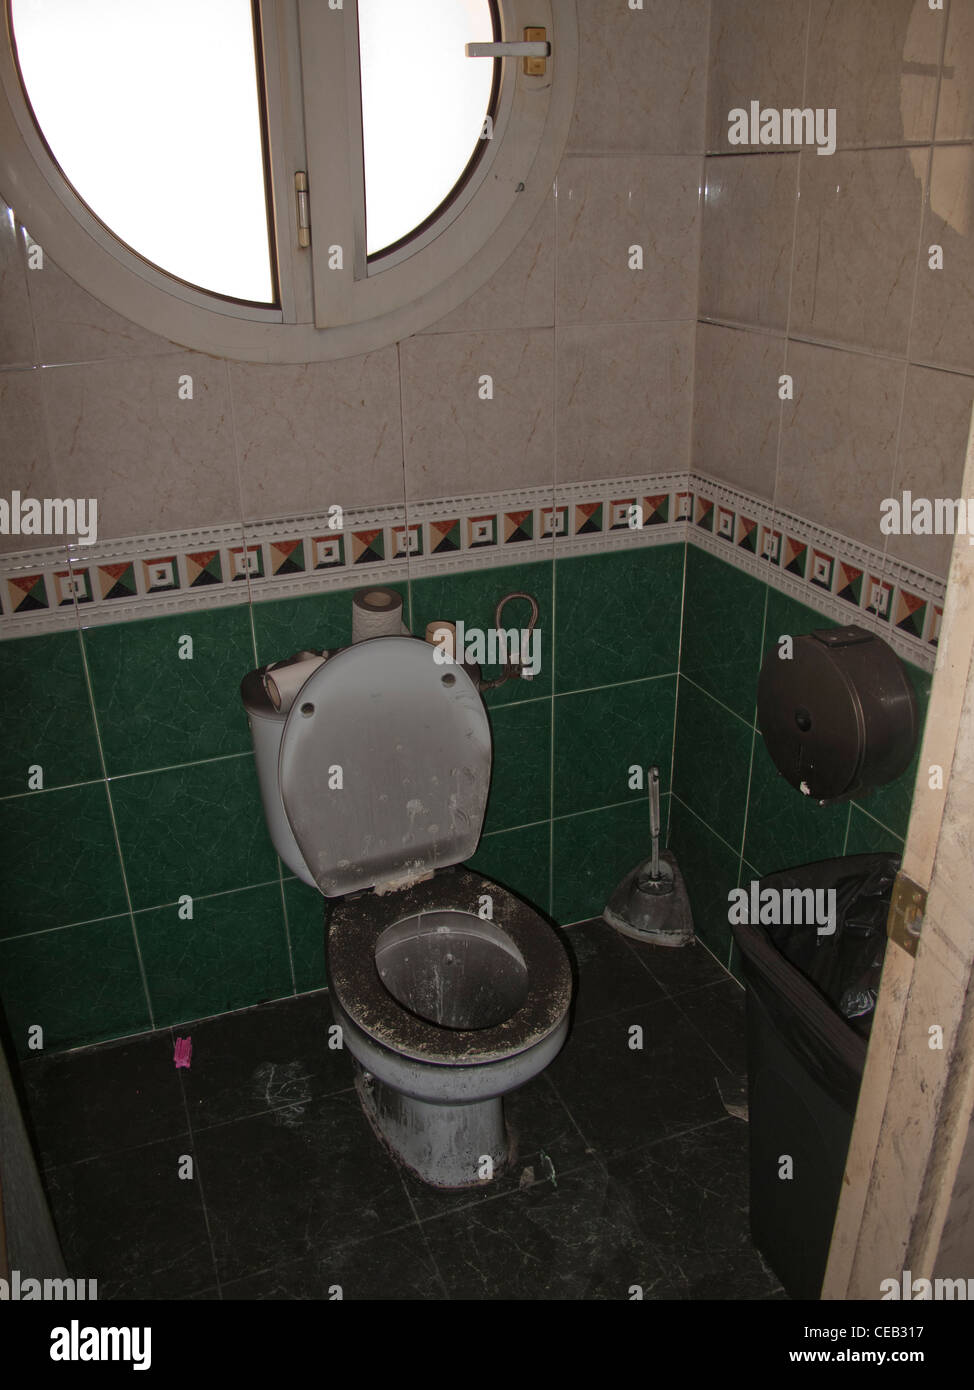 Filthy Toilet Stock Photos amp Filthy Toilet Stock Images Alamy. Filthy Bathroom